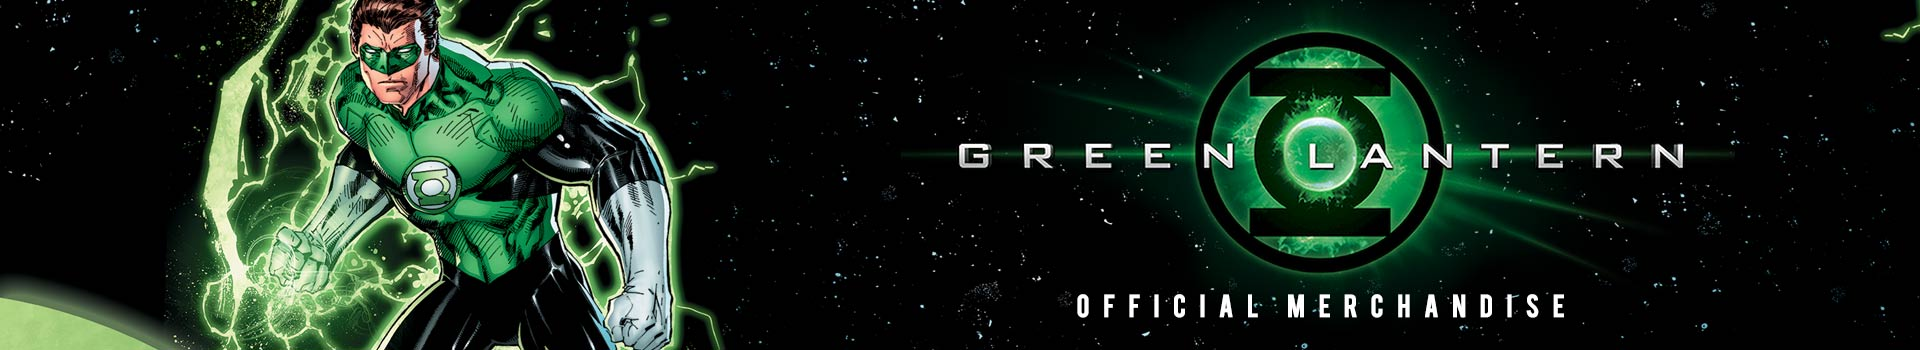 Green Lantern - Official Merchandise